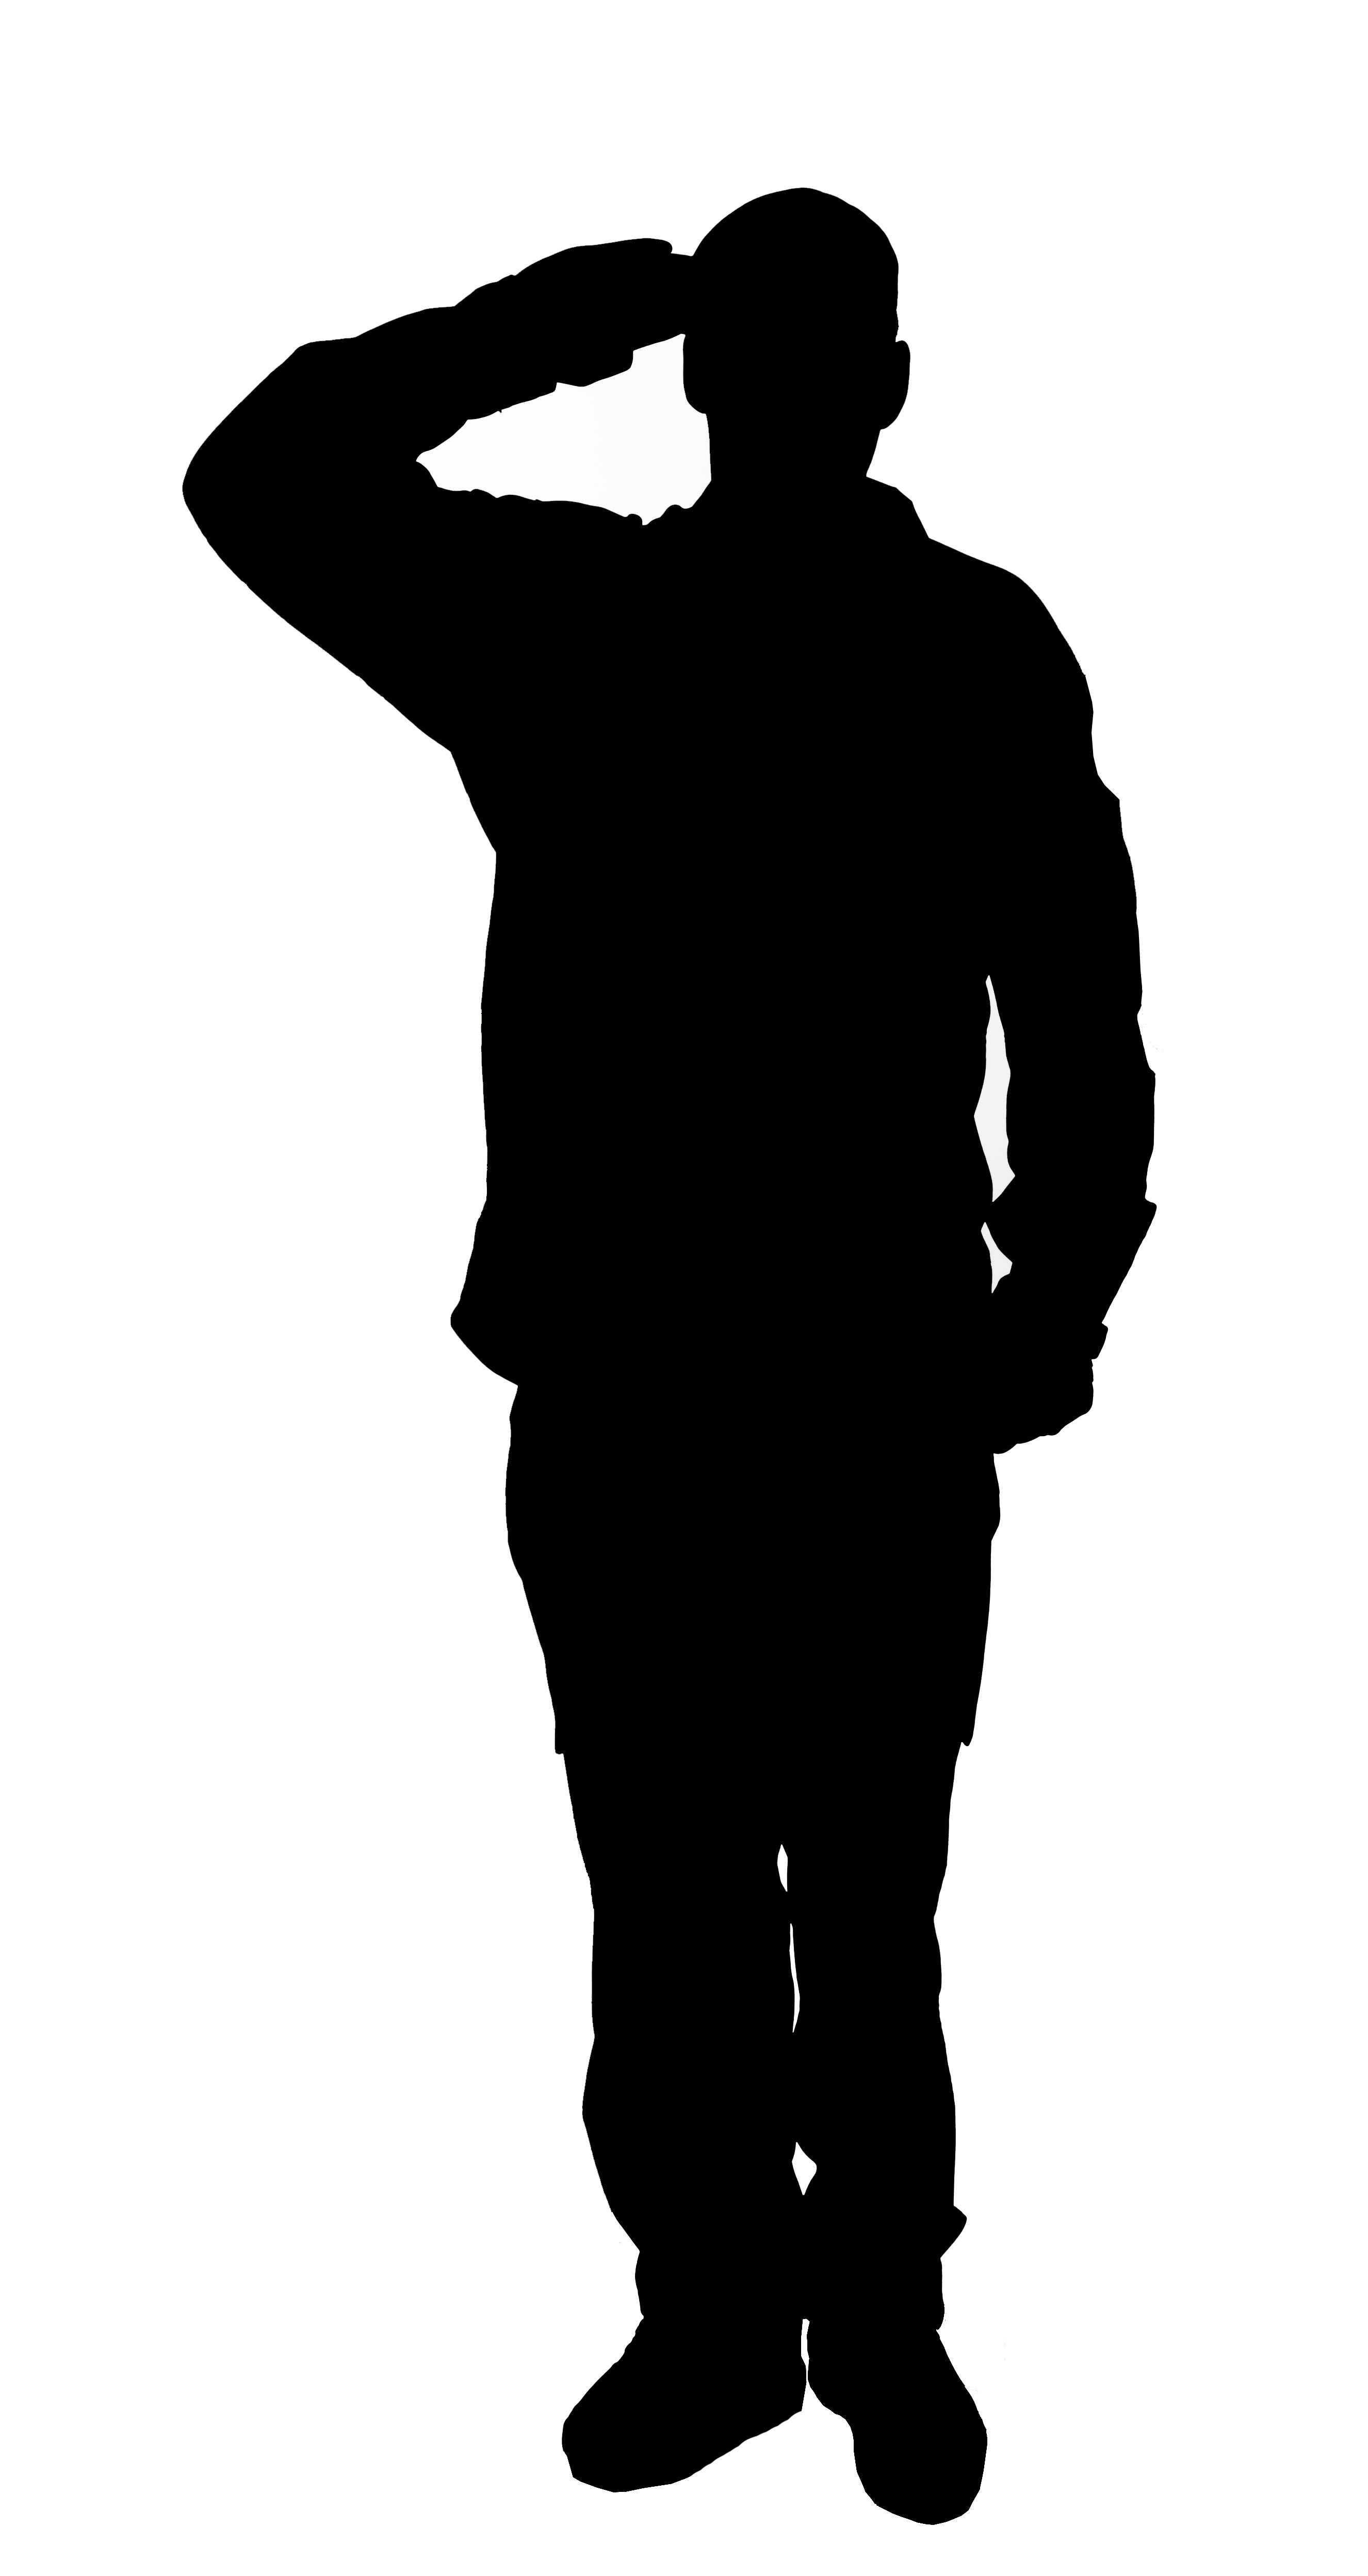 13 Soldier Silhouette Free Cliparts That You Can Download To You